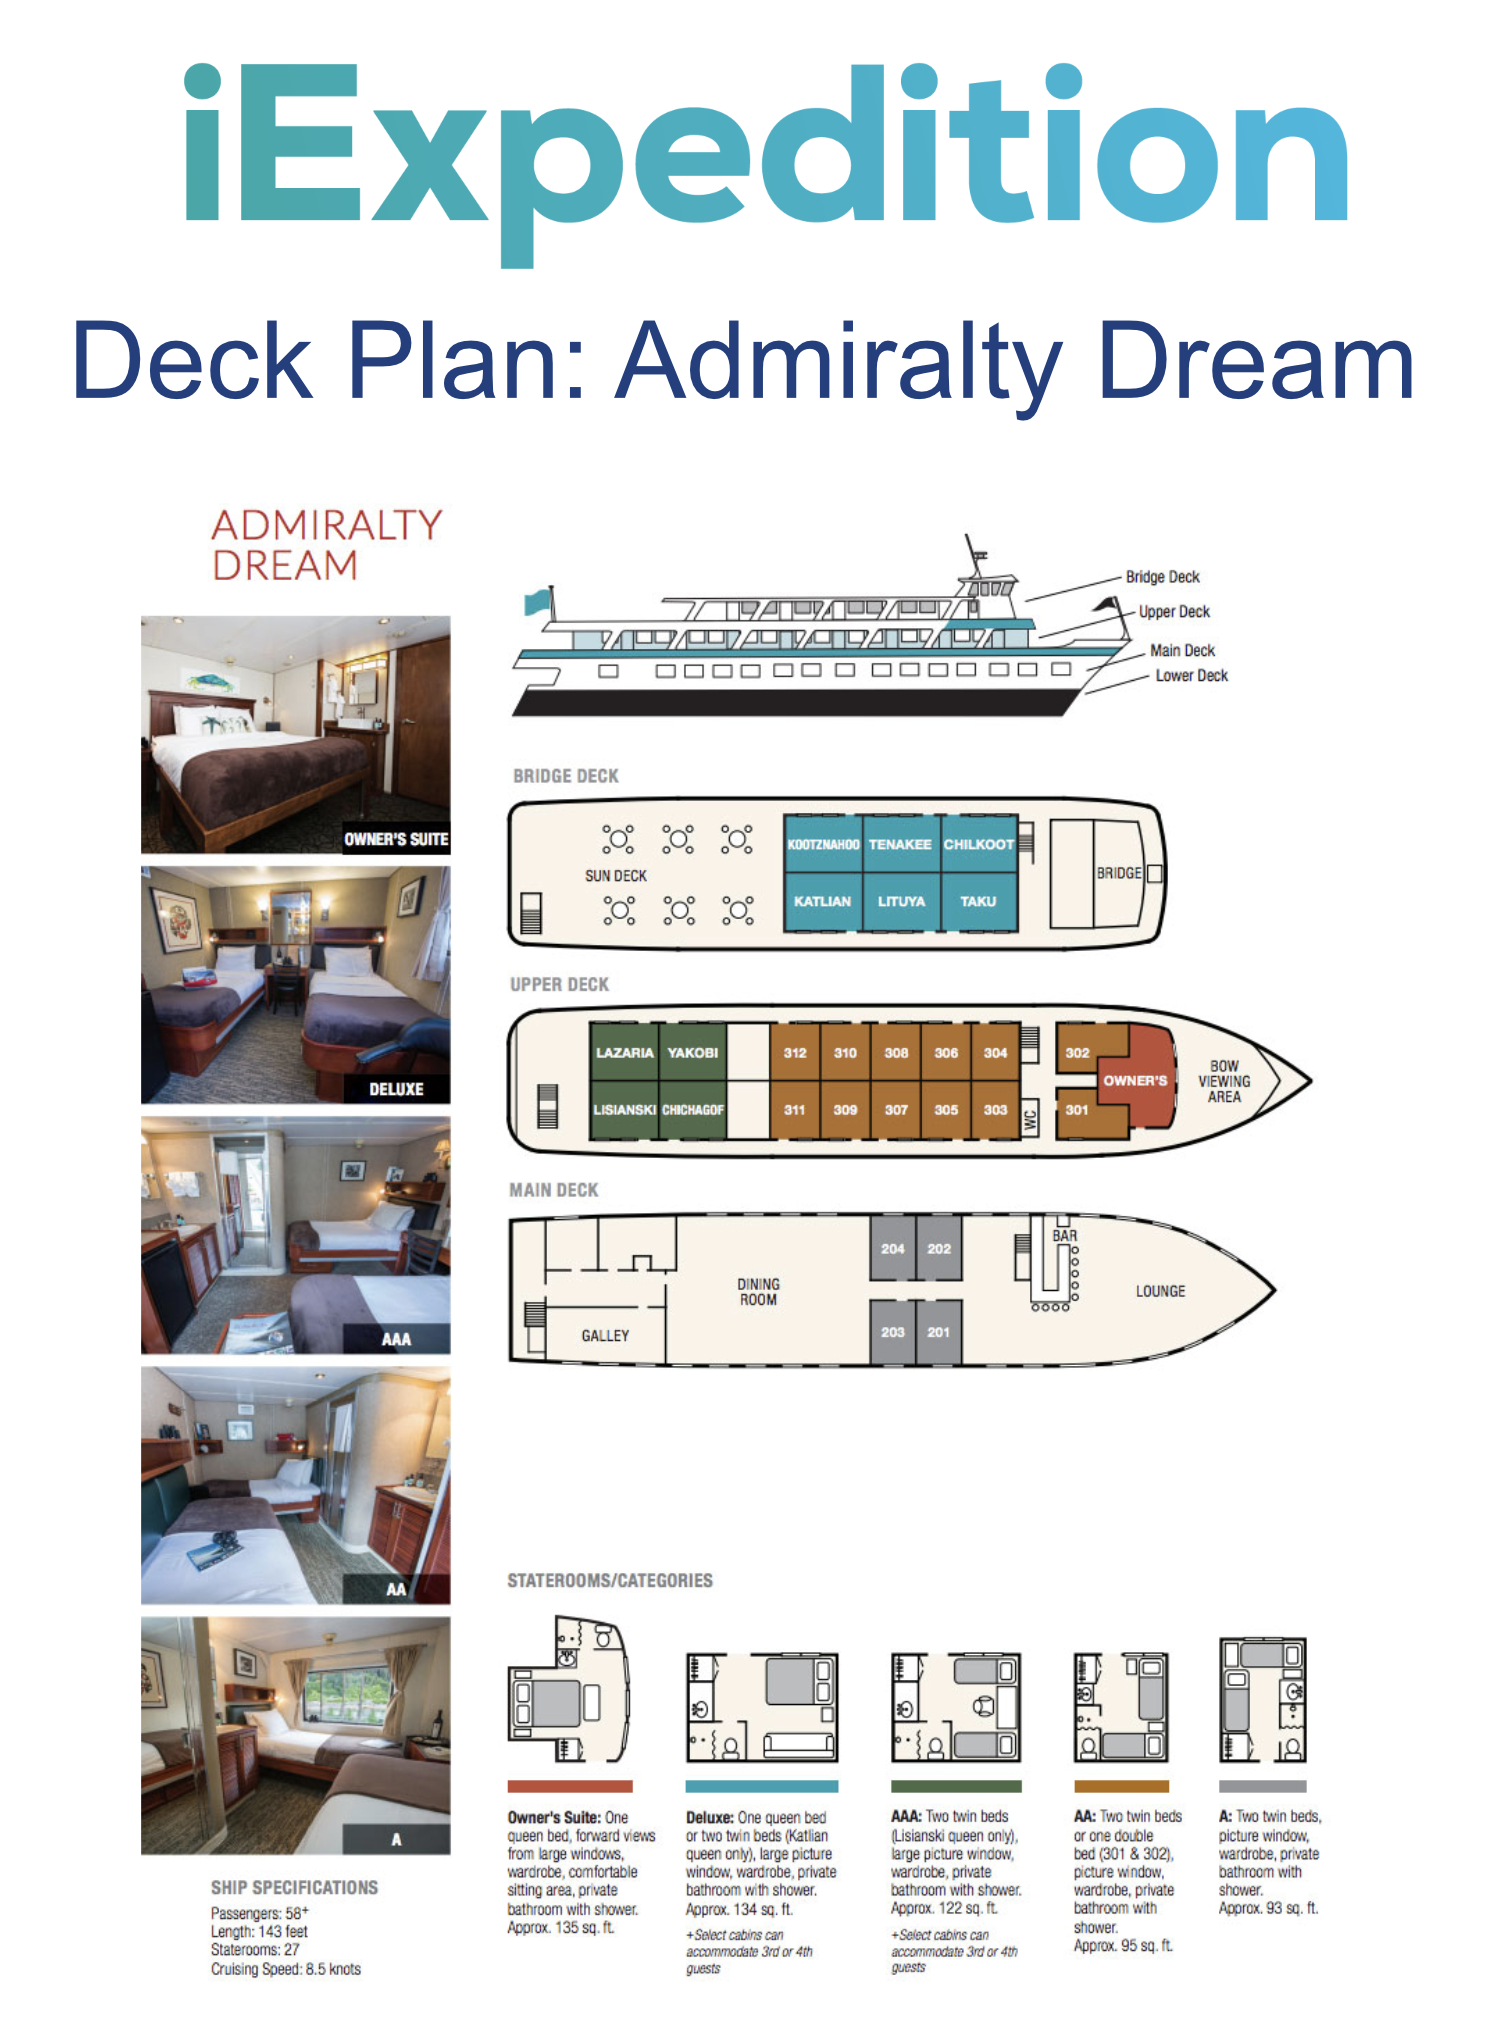 Admiralty dream deck plan